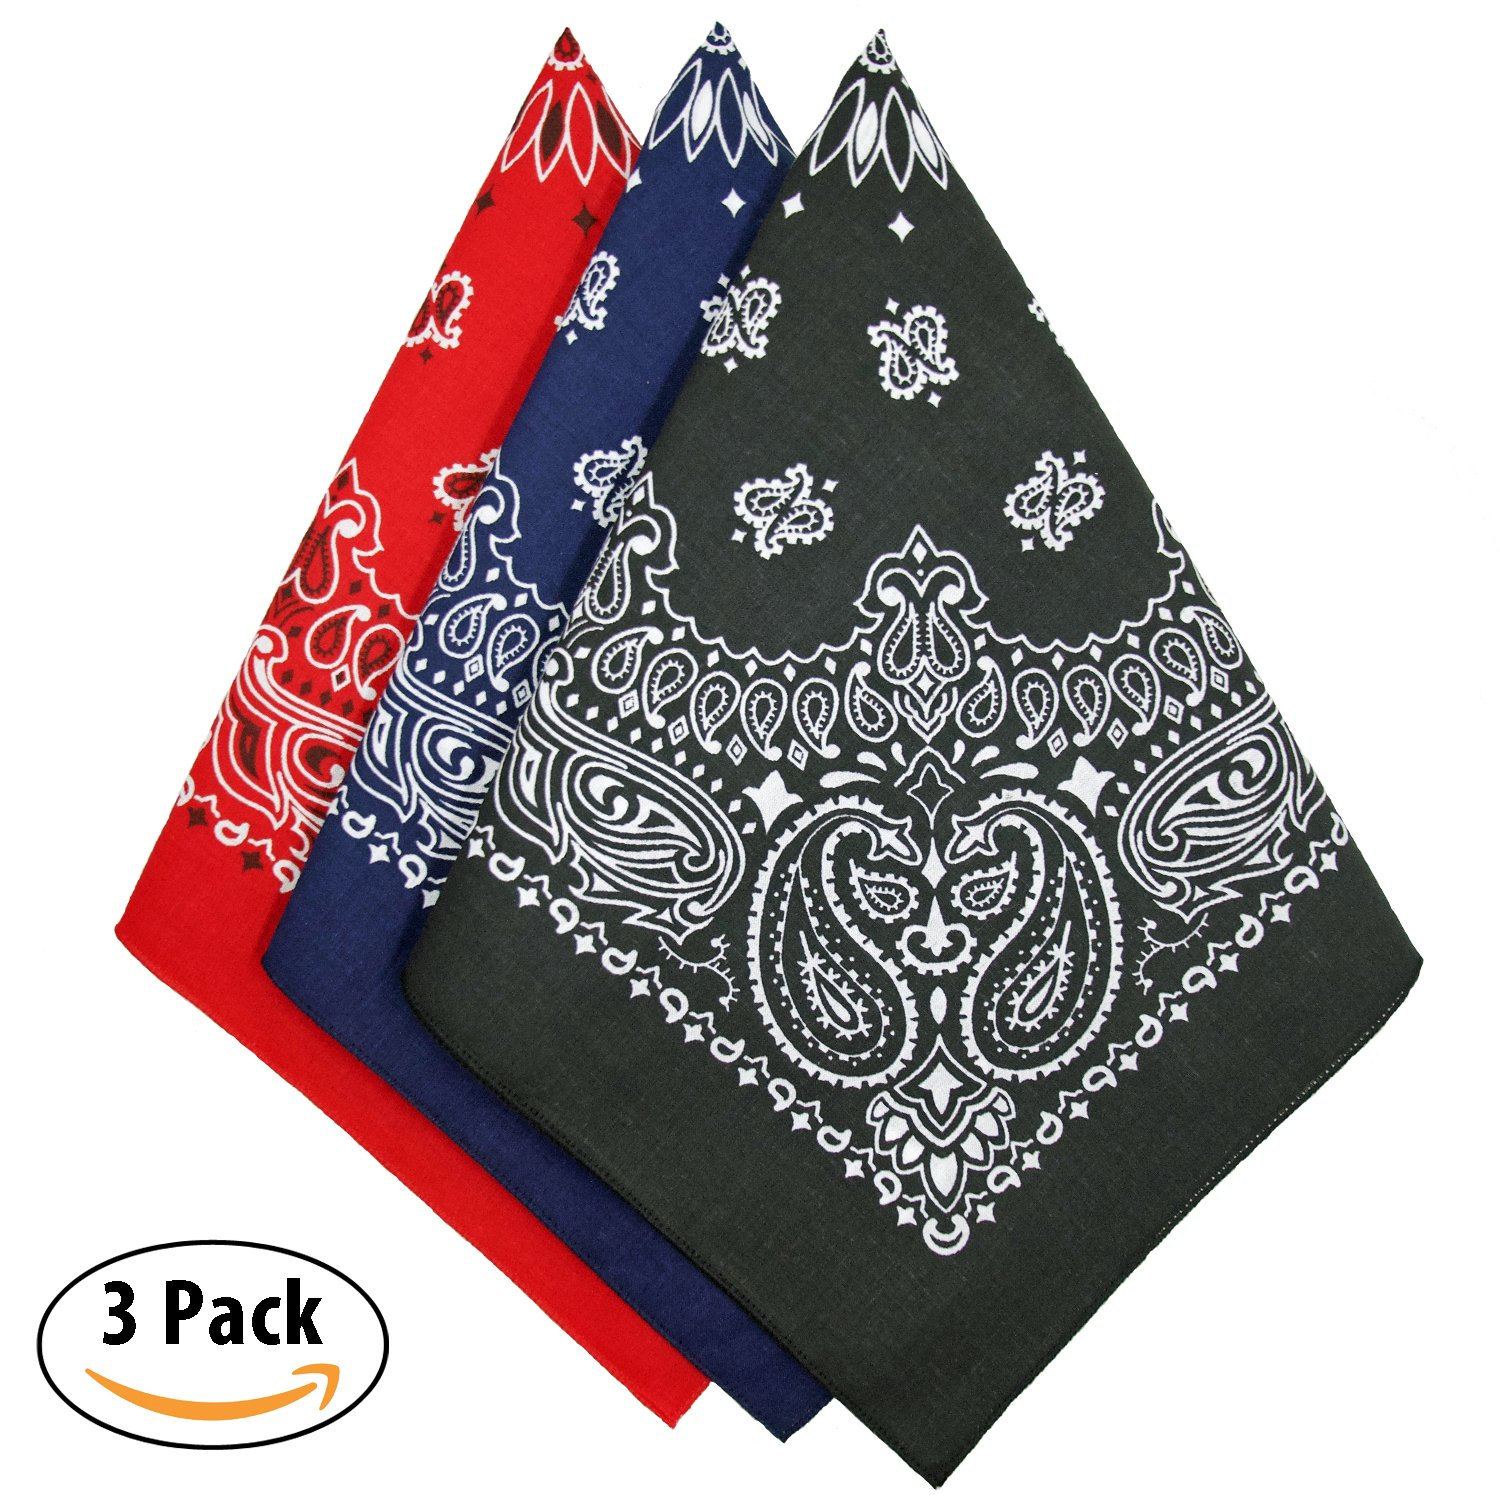 Bandana 3-Pack - Made in USA For 70 Years - Sold by Vets – 100% Cotton –Sewn Edges by OHSAY USA (Image #2)